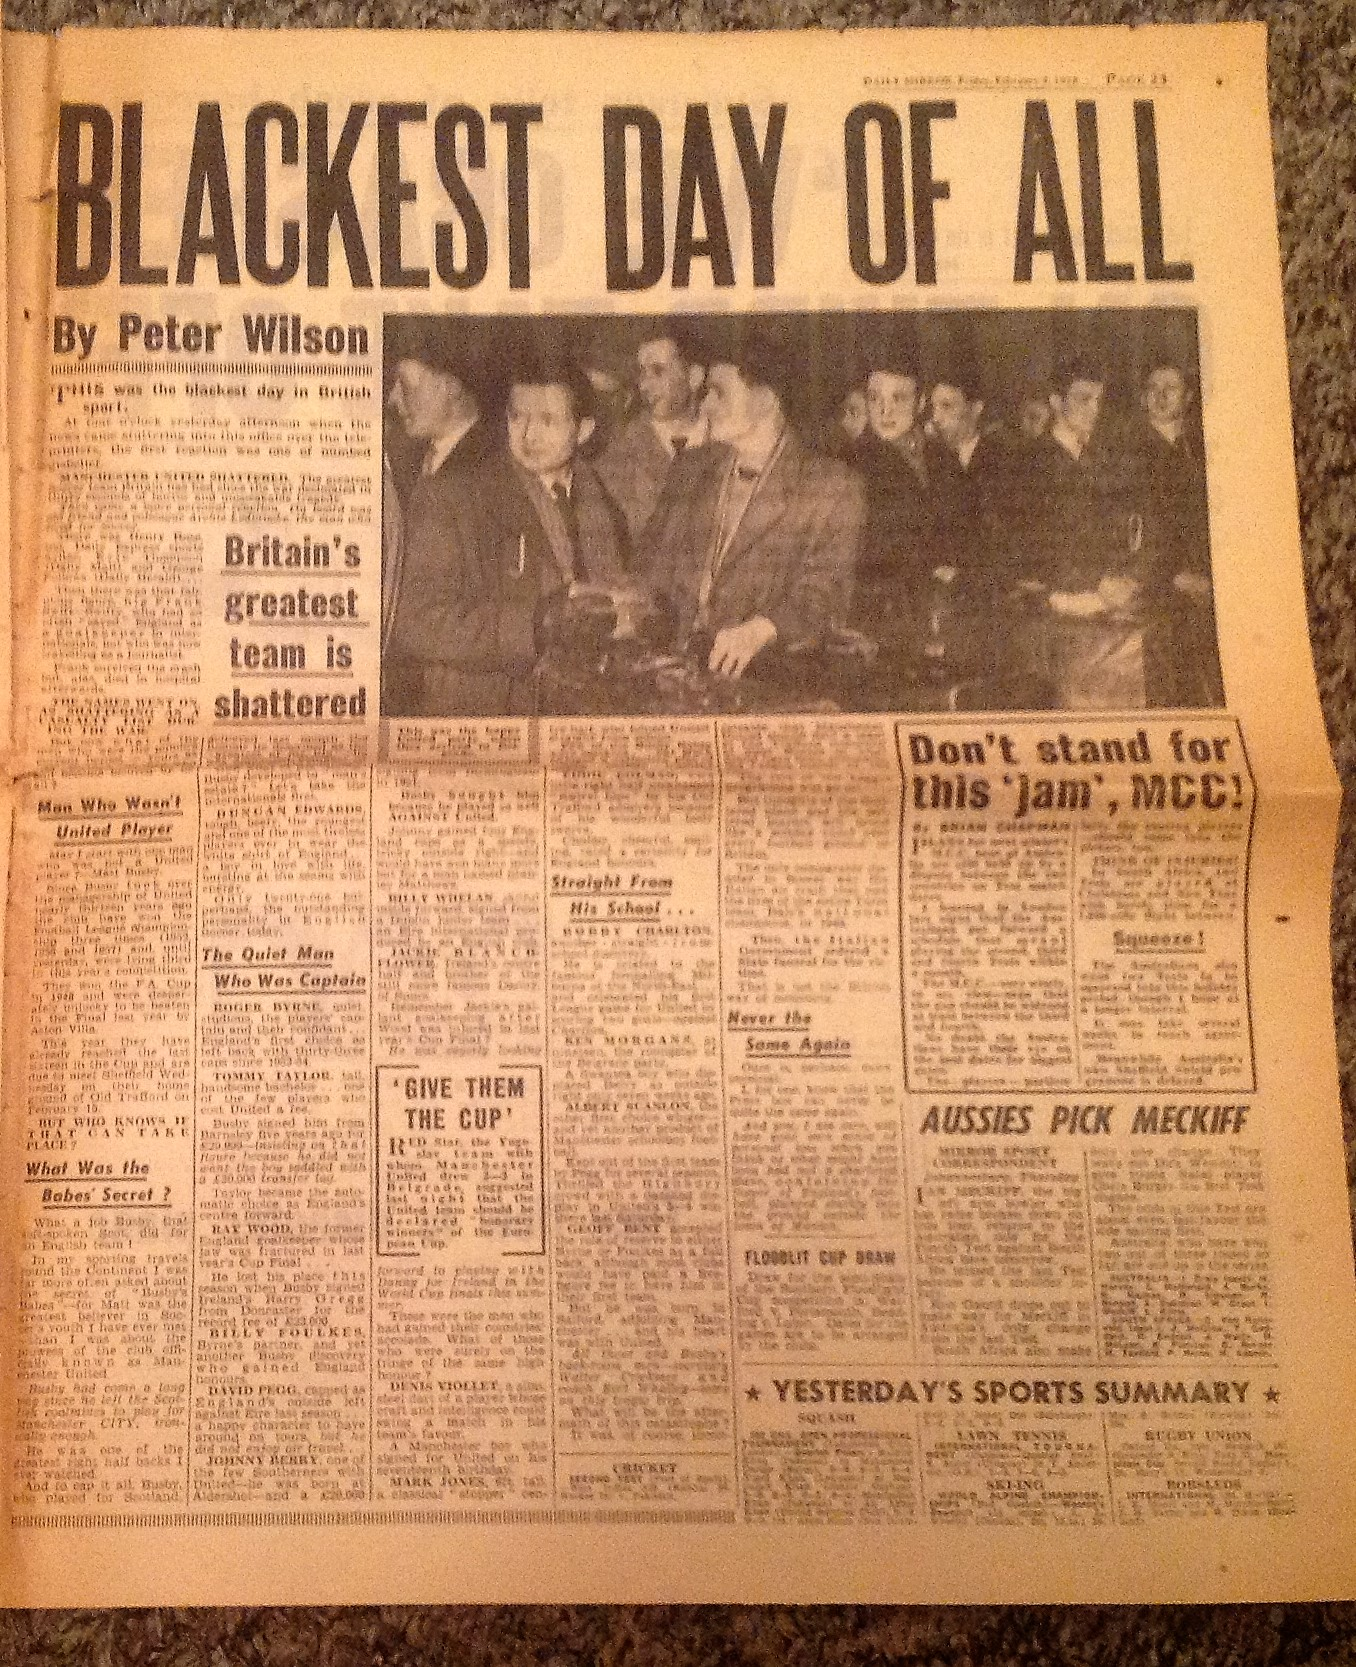 Lot 29 - Football Historic Daily Mirror from February 7th 1958 the issue that brought the tragic news of